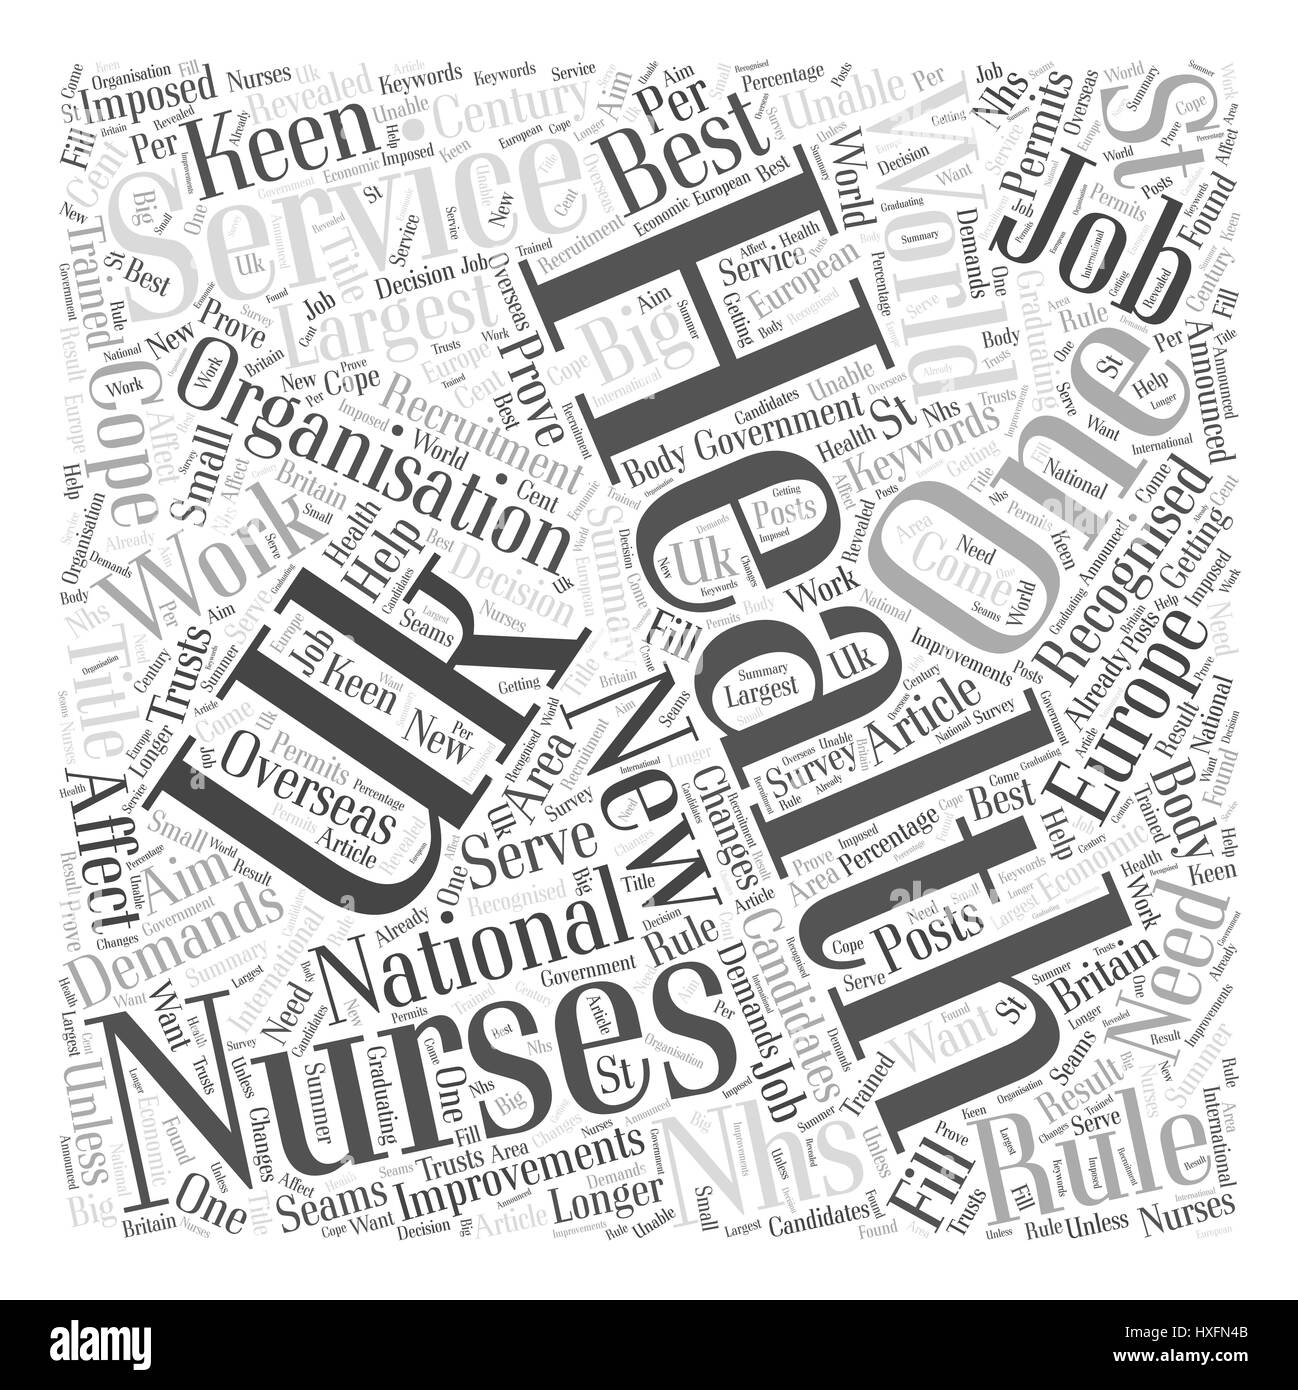 New Recruitment Rules For NHS Nurses Word Cloud Concept - Stock Vector